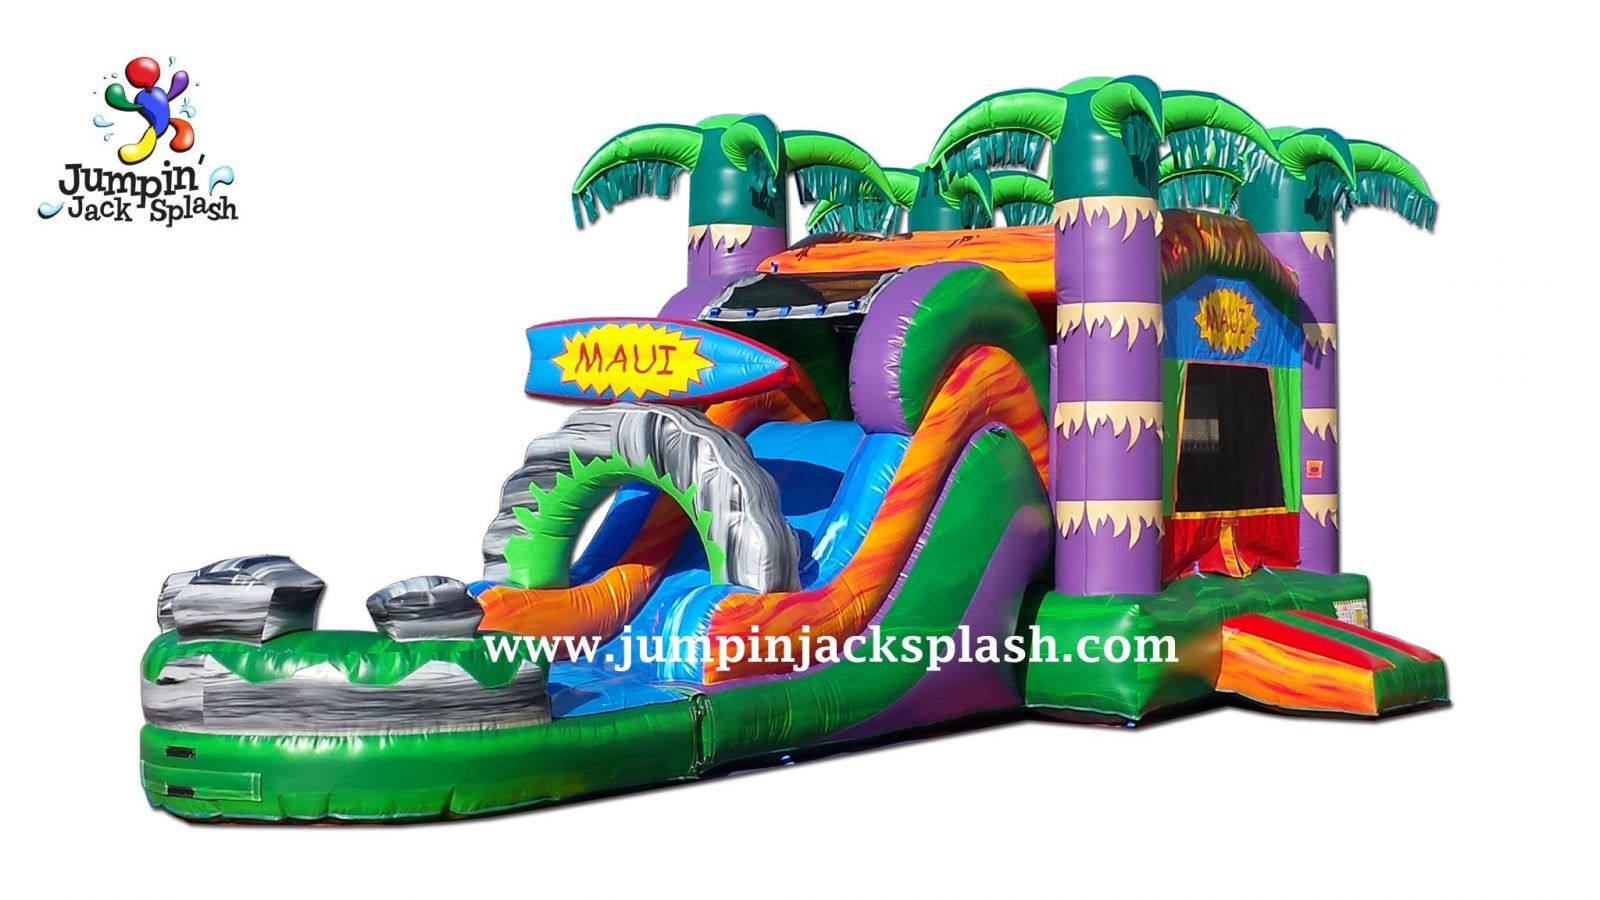 Maui Bounce House Slide Combo Jumpin Jack Splash Utah